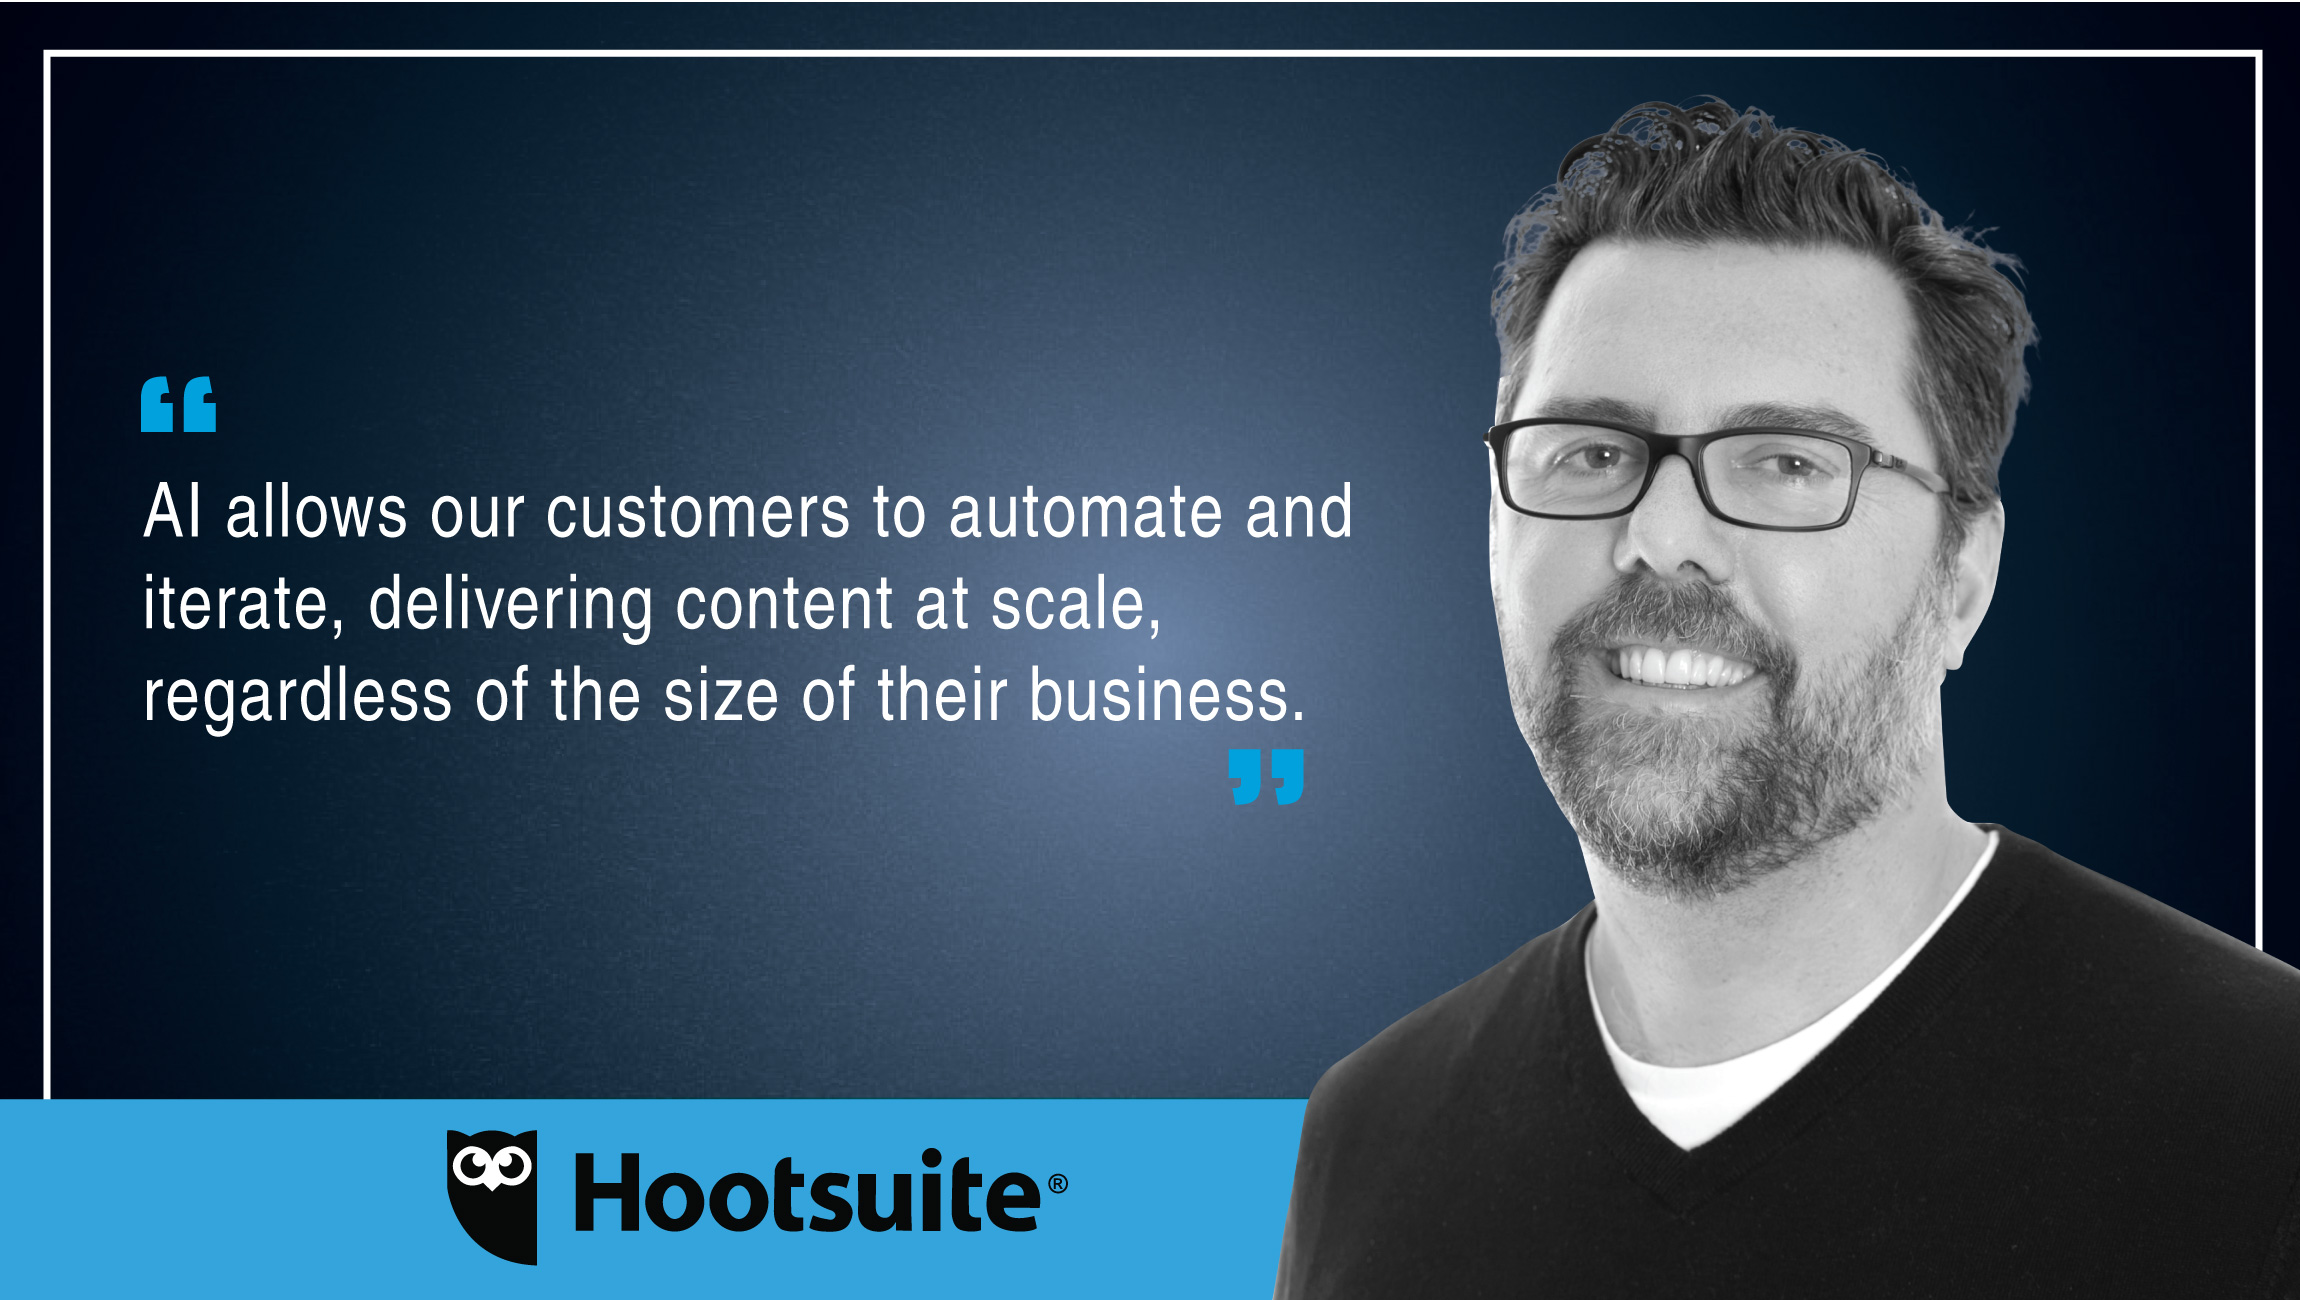 Jeremy Wood, VP of Product Marketing, Hootsuite